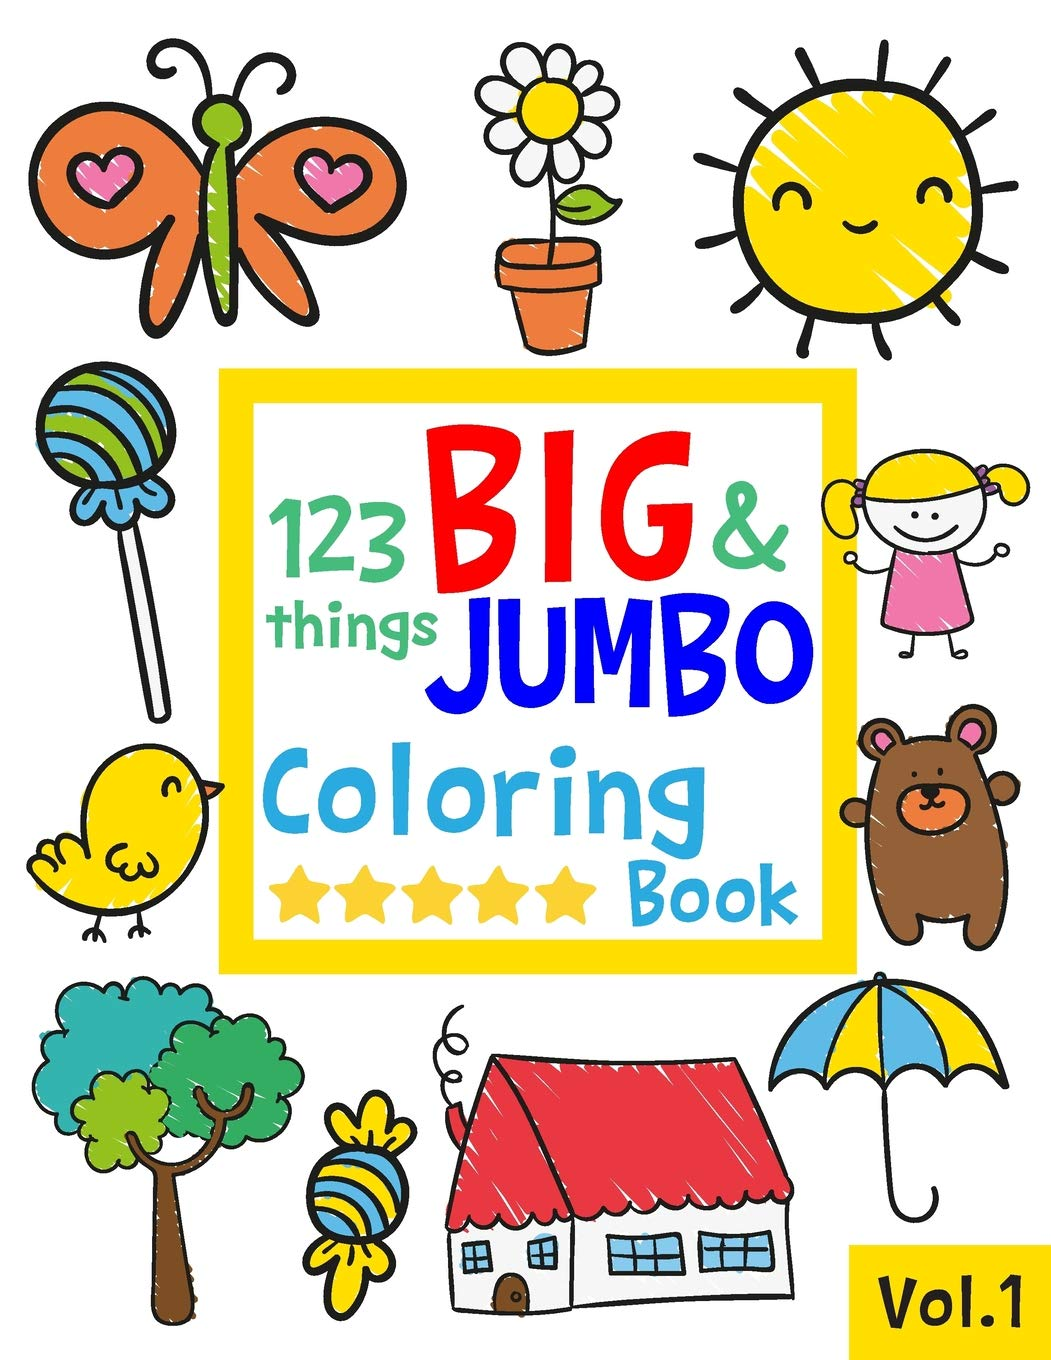 - 123 Things BIG & JUMBO Coloring Book: 123 Coloring Pages!!, Easy